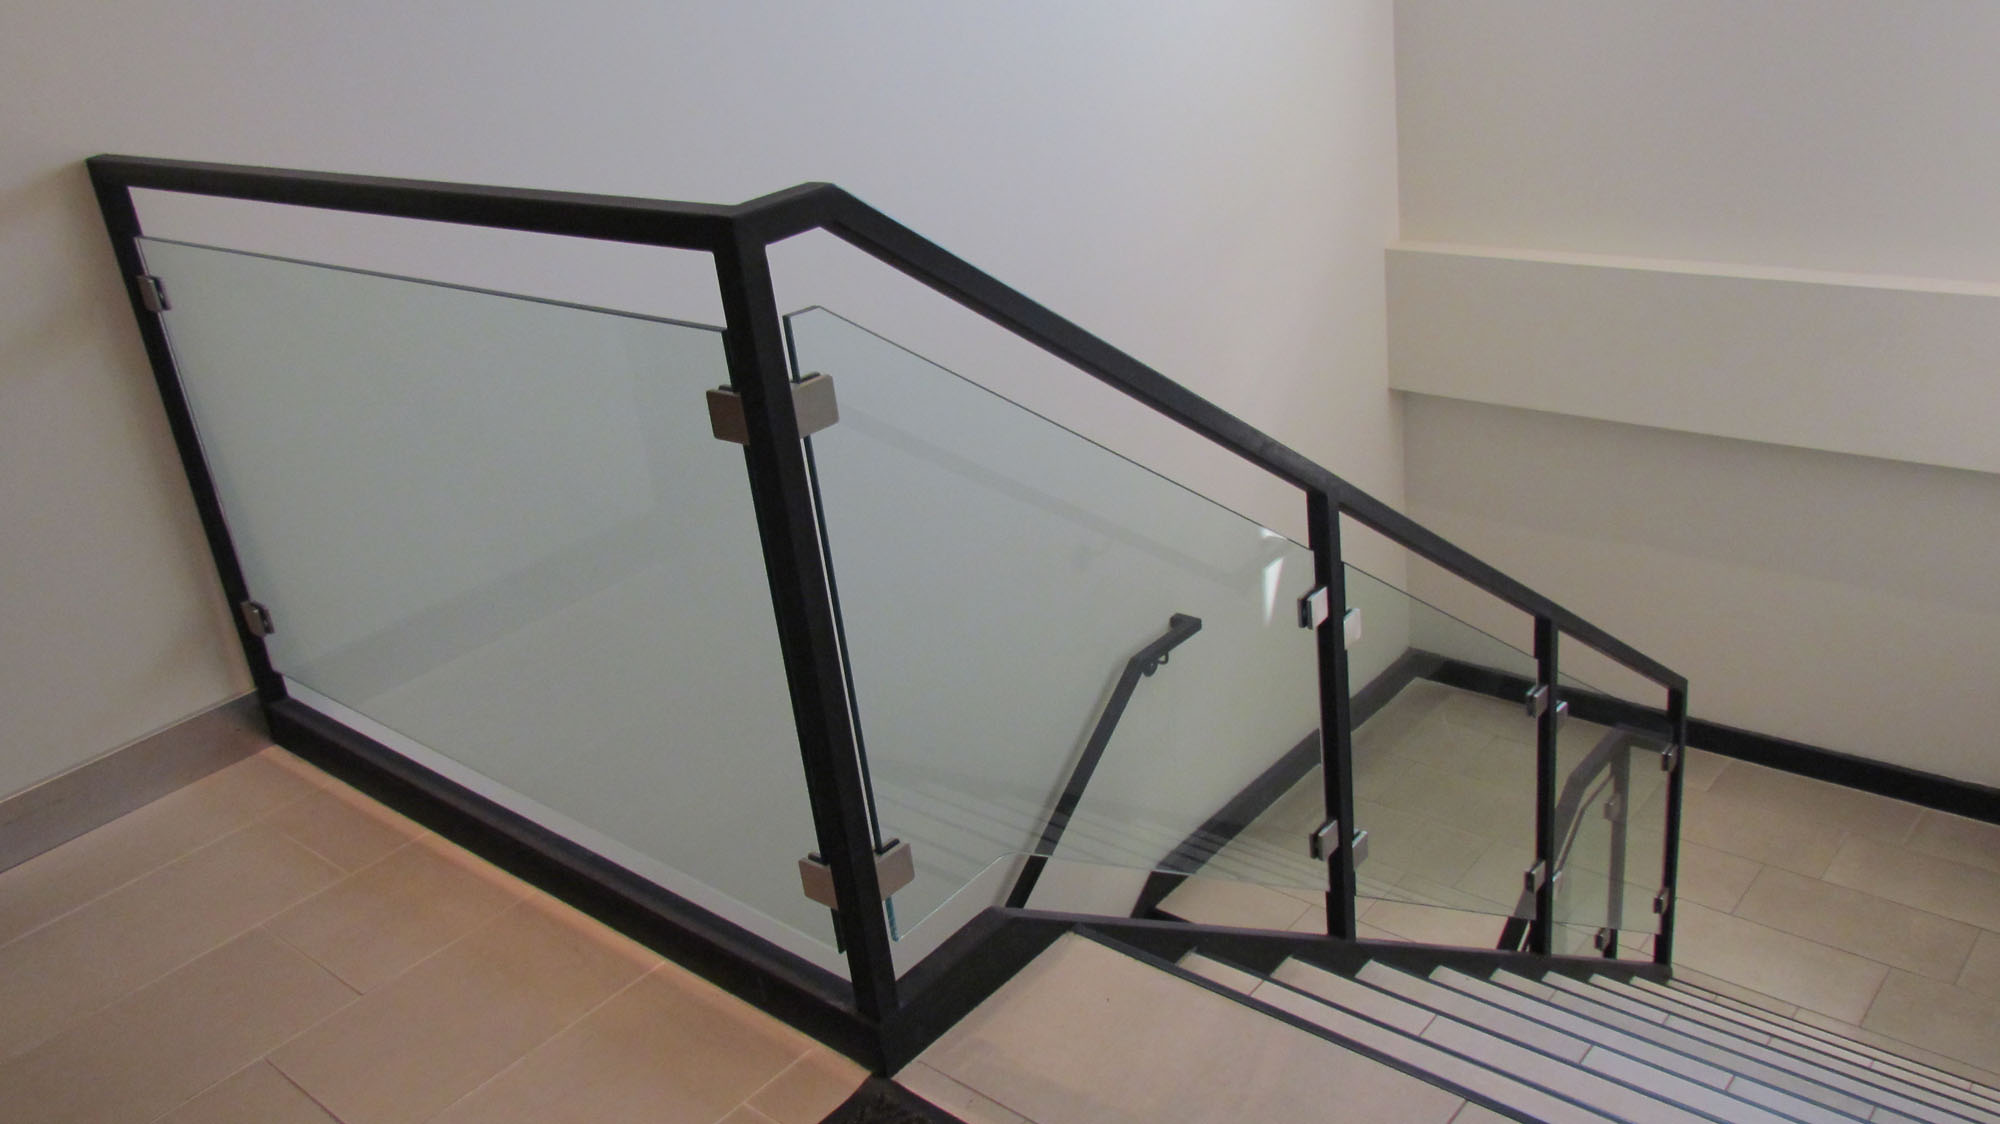 glass handrail systems calgary railings deck gallery services spotlight exterior interior ac